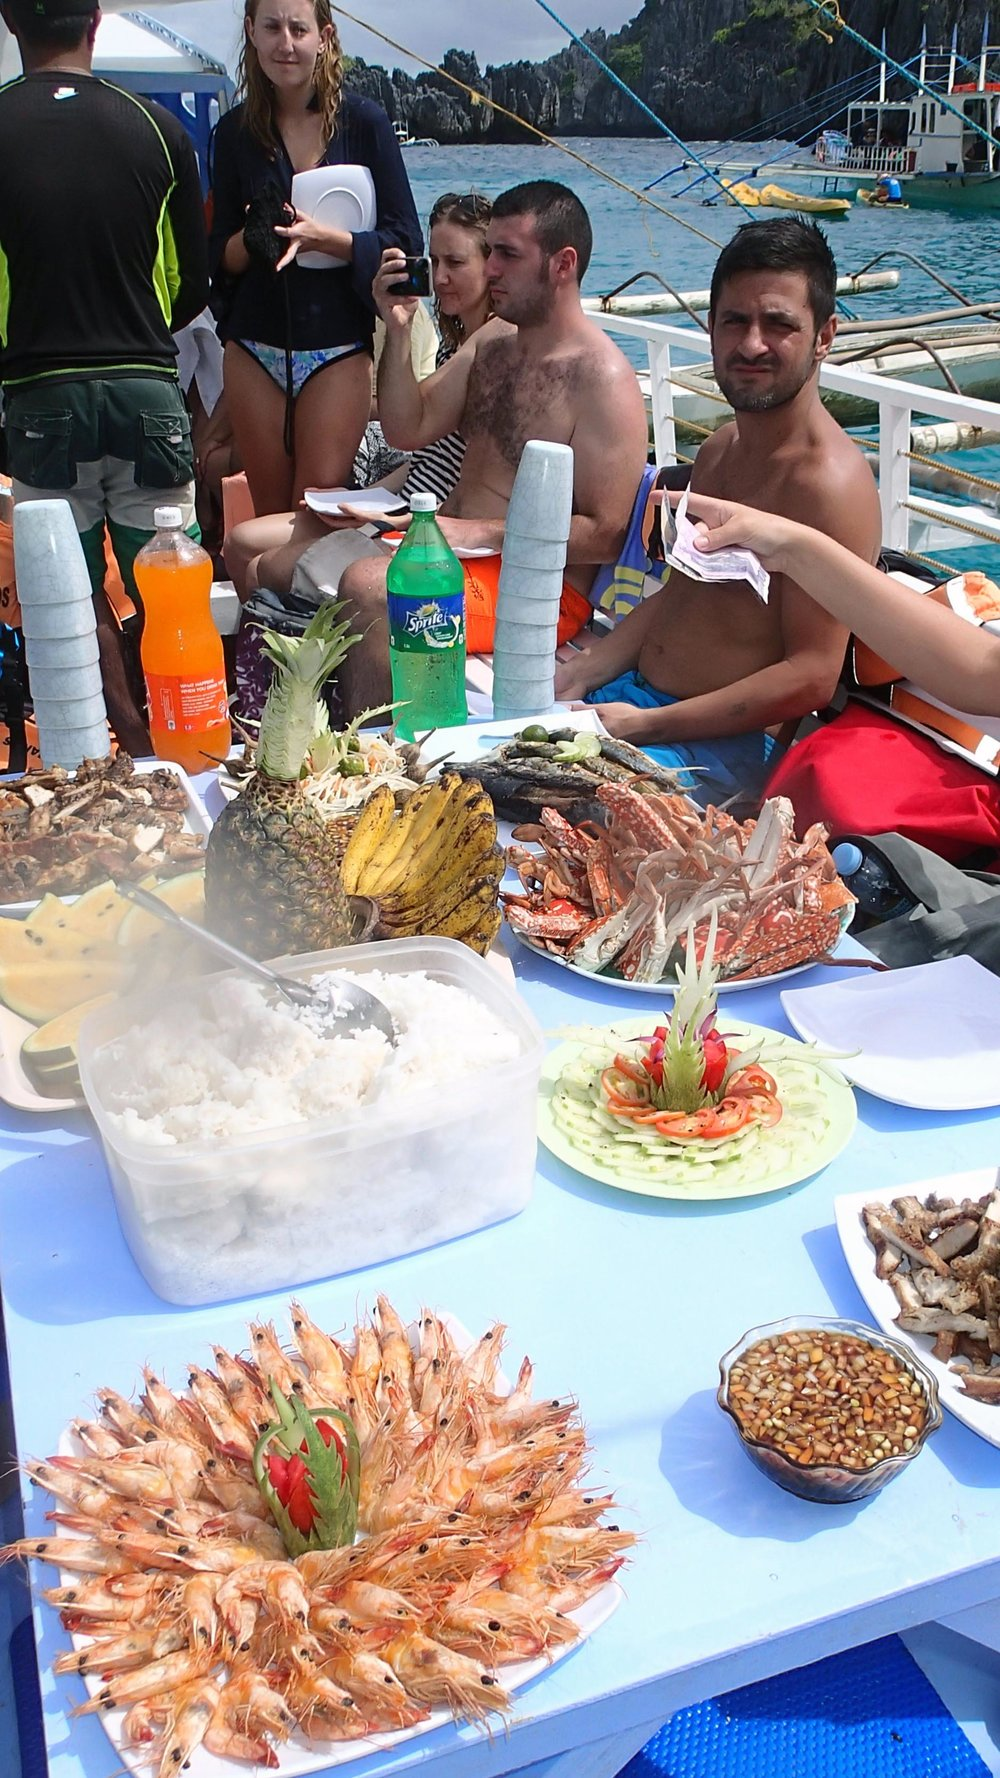 seafood lunch spread.jpg